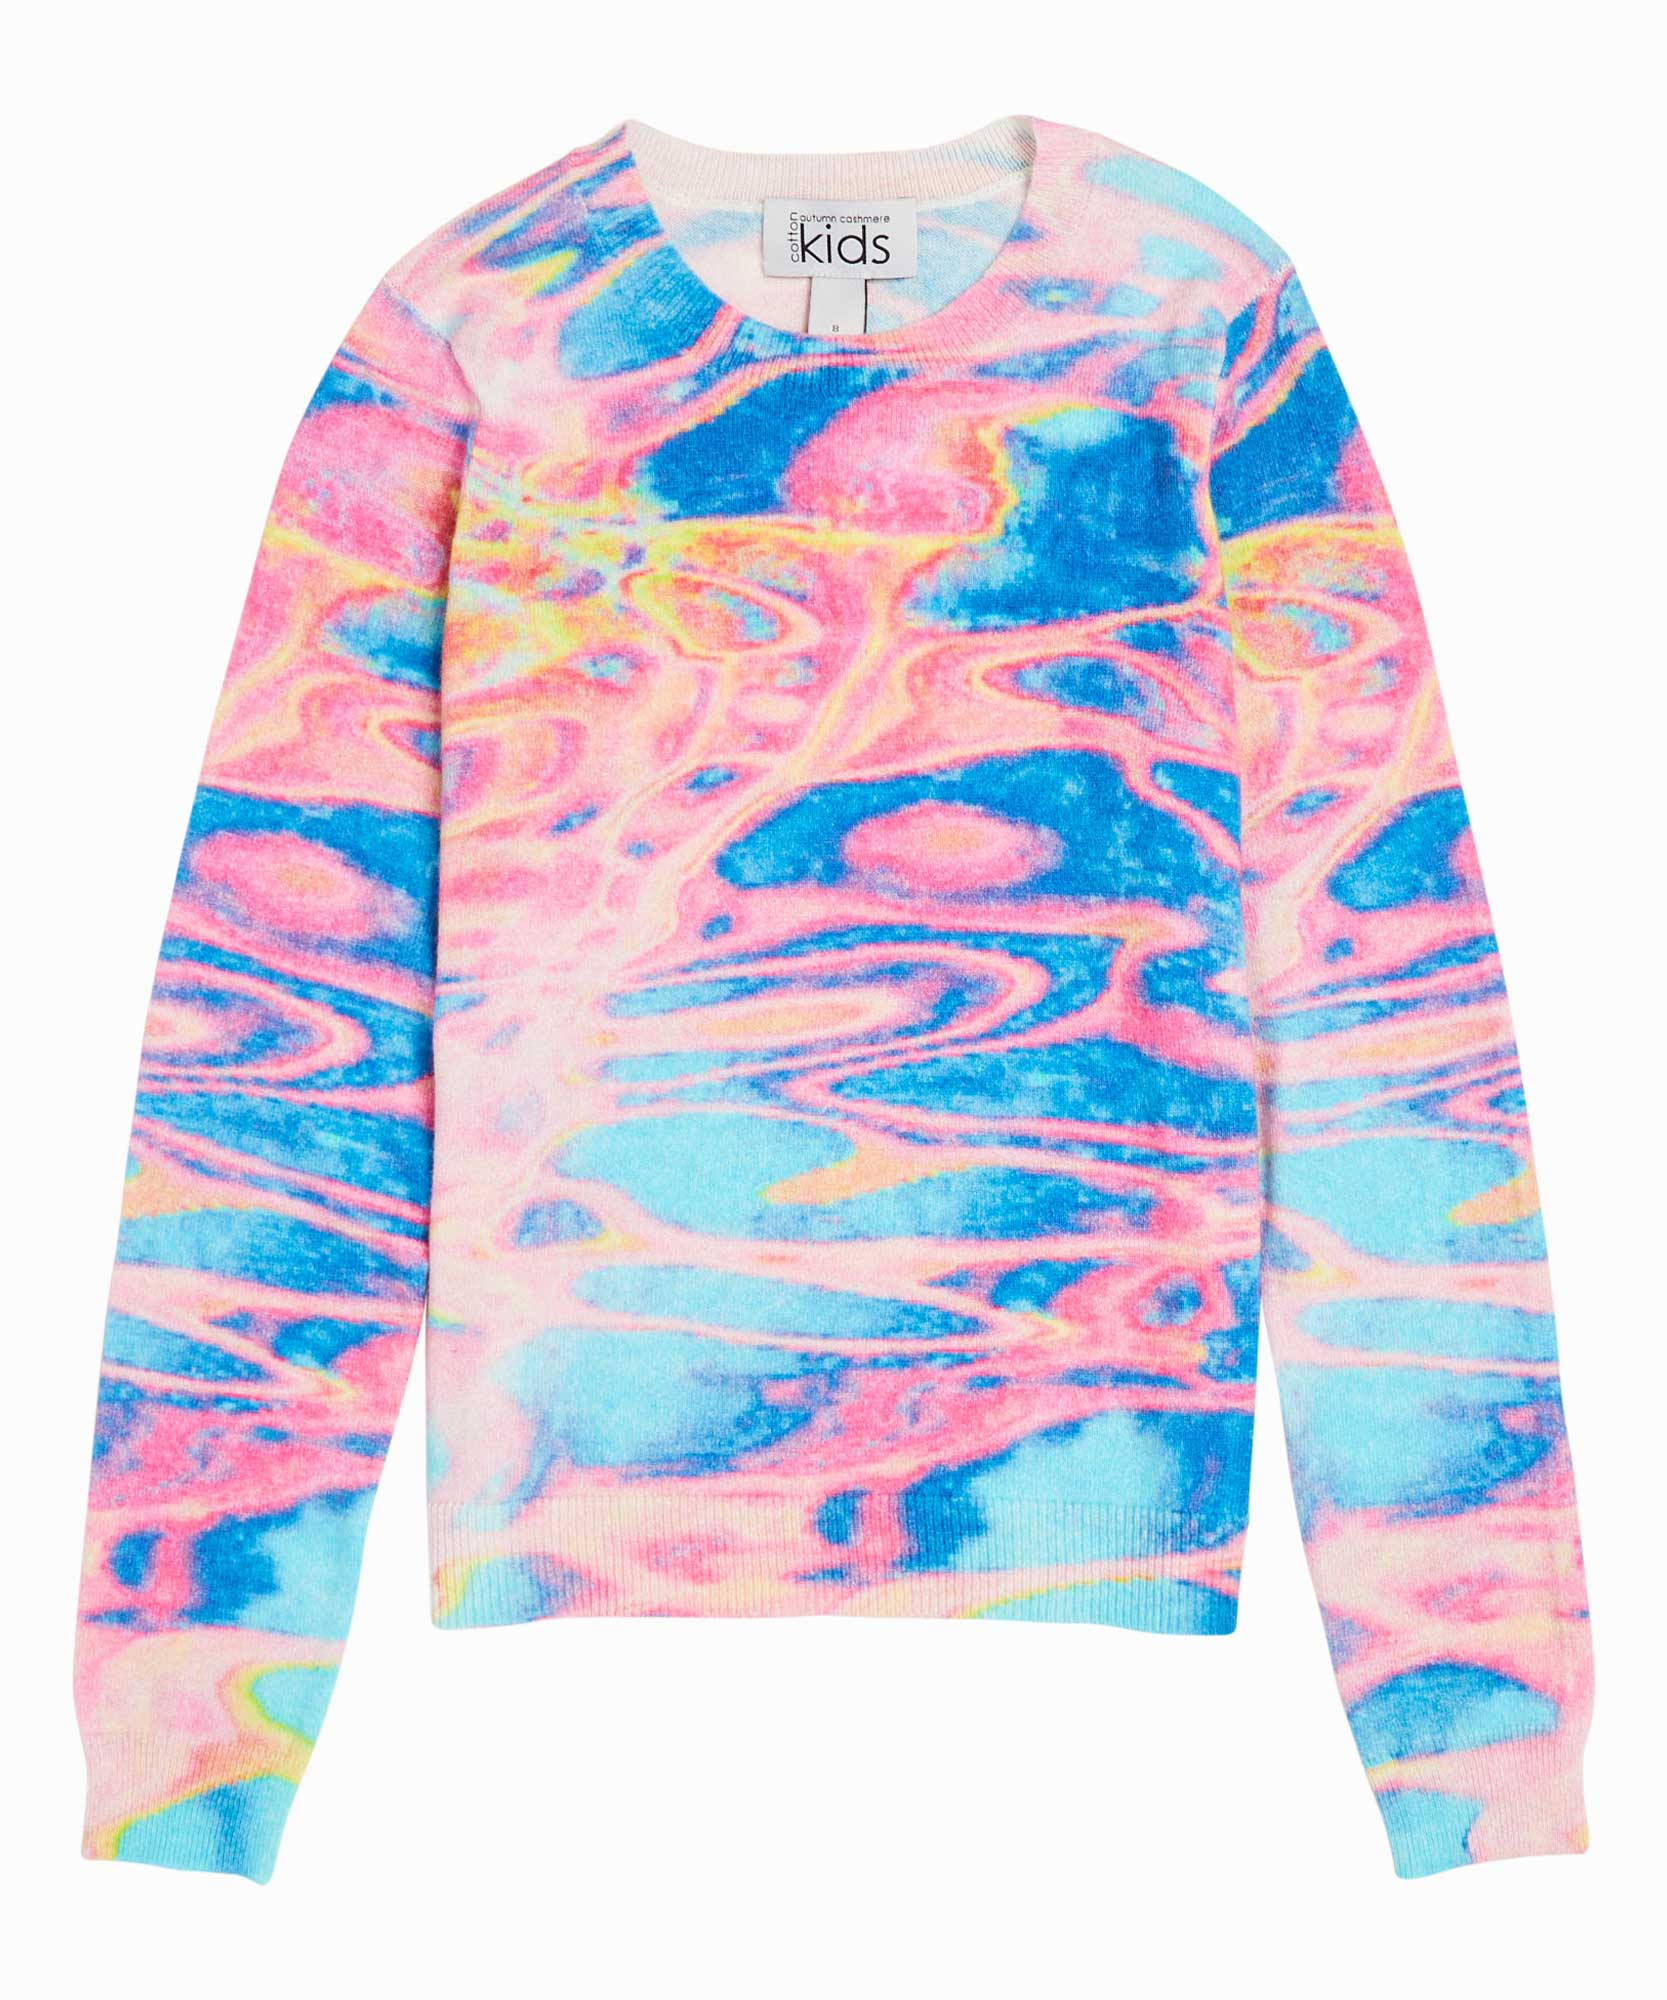 Watercolor Paint Print Knit Sweater